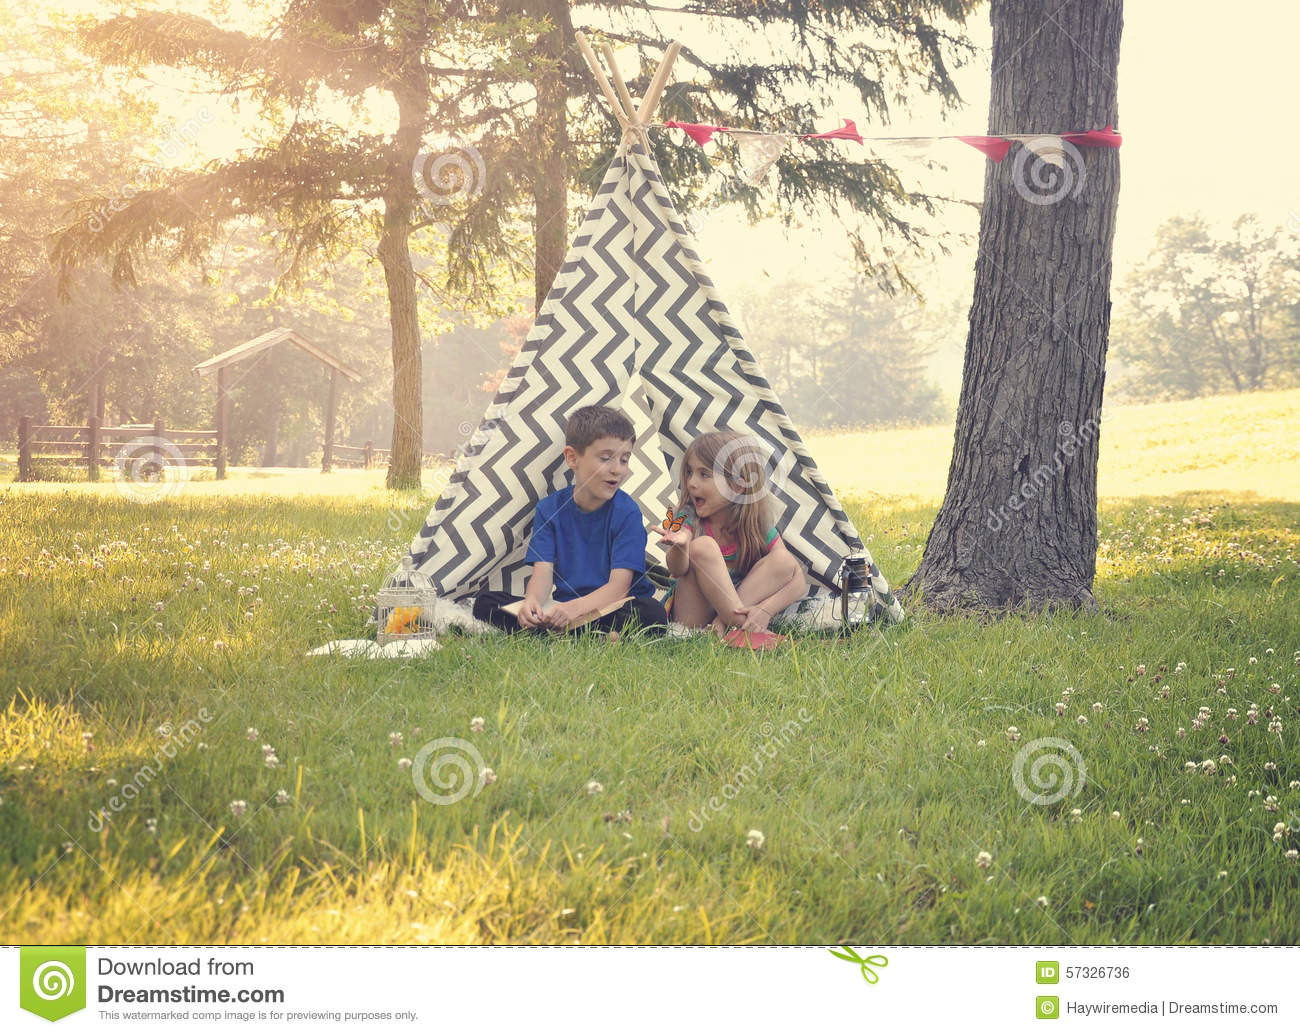 Children Playing Outside in Summer Tent